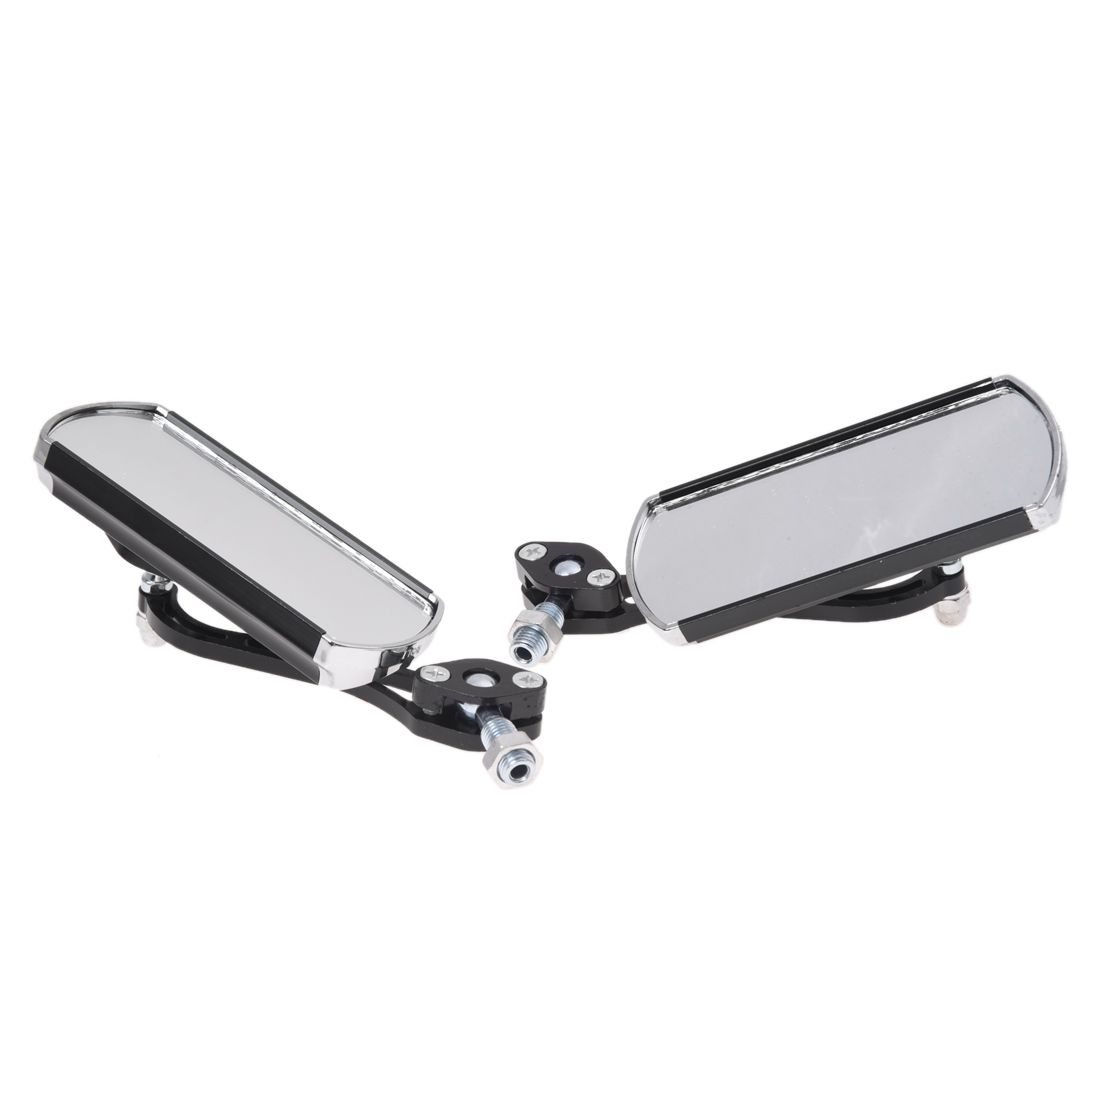 2x Motorcycle Motorbike Rear View Side Racing Mirrors for Honda